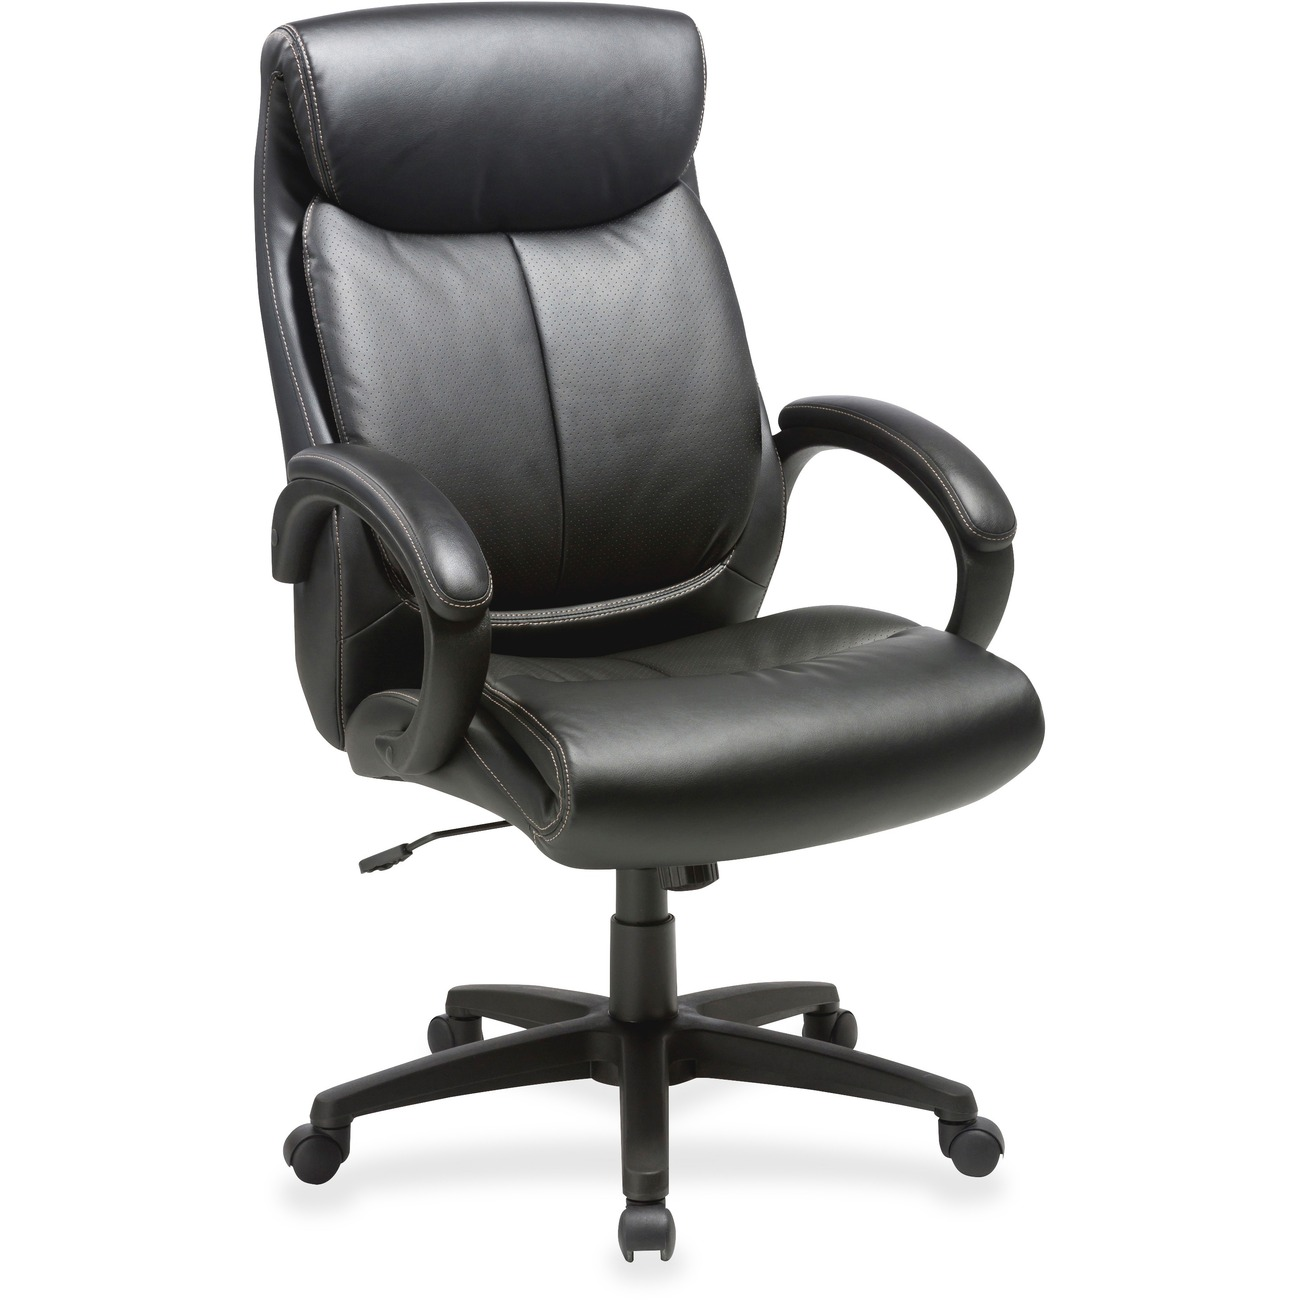 executive chair accessories stackable rolling chairs west coast office supplies furniture